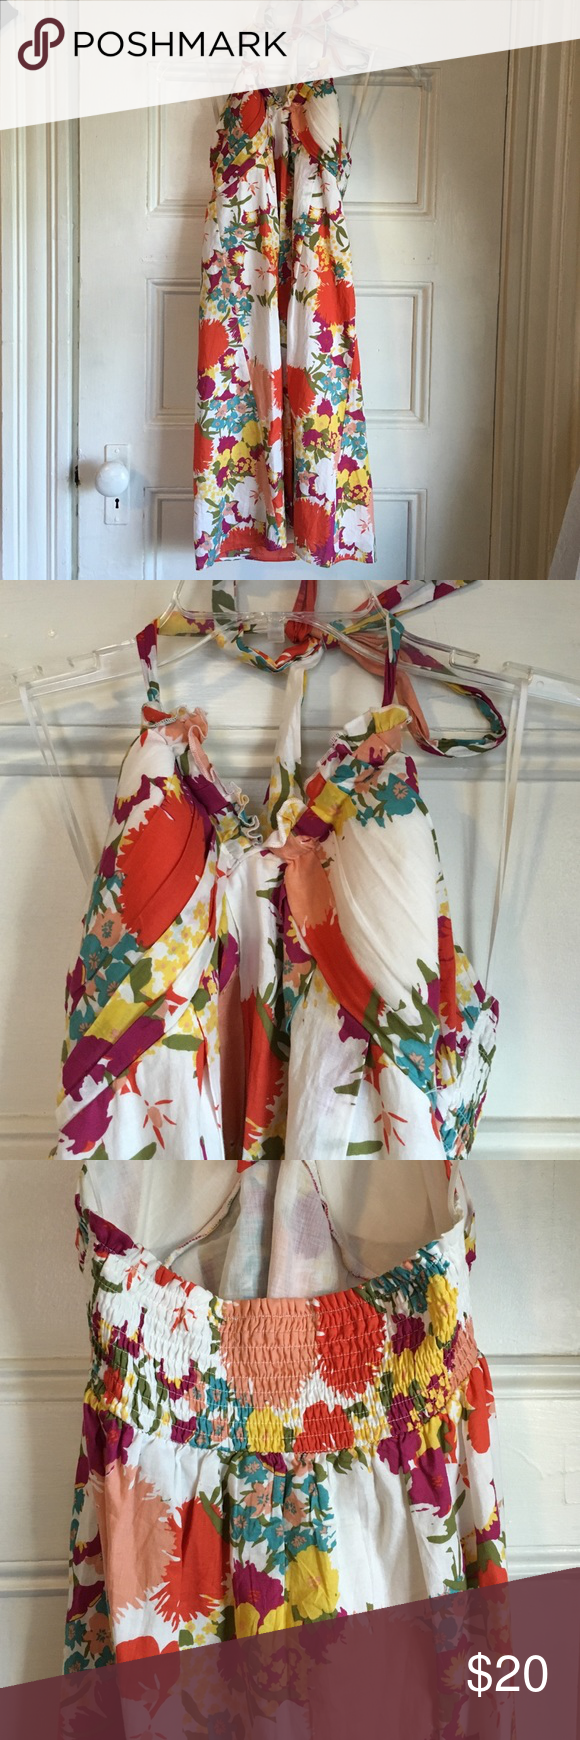 """Floral Halter Dress White floral dress with a self-tie halter and smocked back. Bust is padded. 28"""" from top to hem. Fully lined. Gorgeous floral pattern with a white base and pops of green, real, yellow, orange, light pink, and purple. Juniors size medium Dresses Mini"""